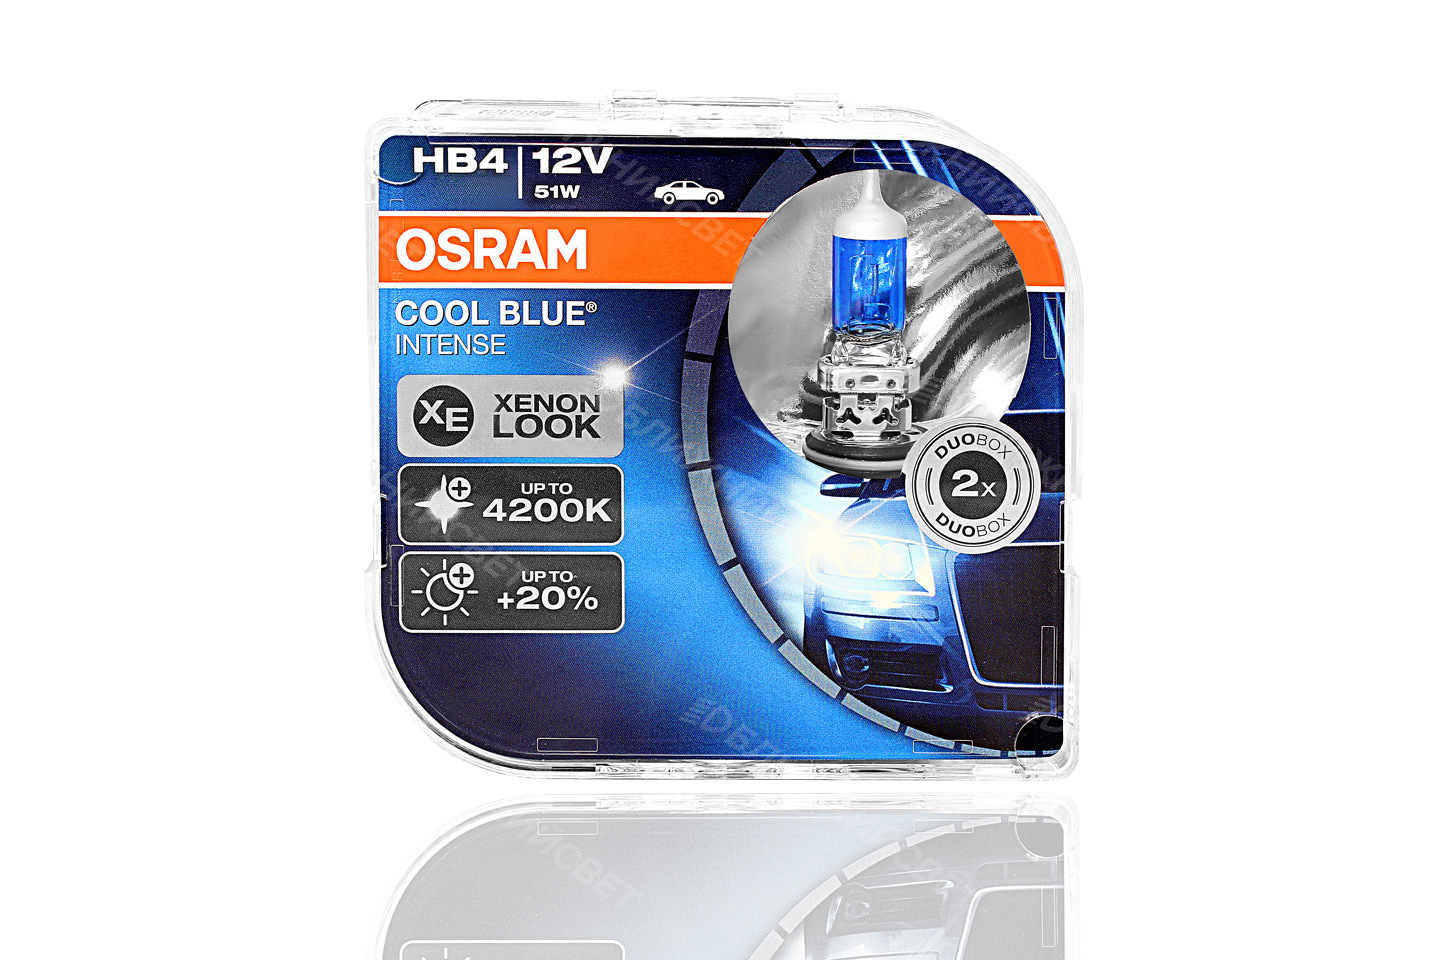 Фото Комплект галогенных автоламп OSRAM HB4 9006 COOL BLUE INTENSE 4200°К +20%света (12V,51W) 9006CBI-HCB артикул 9006CBI-HCB